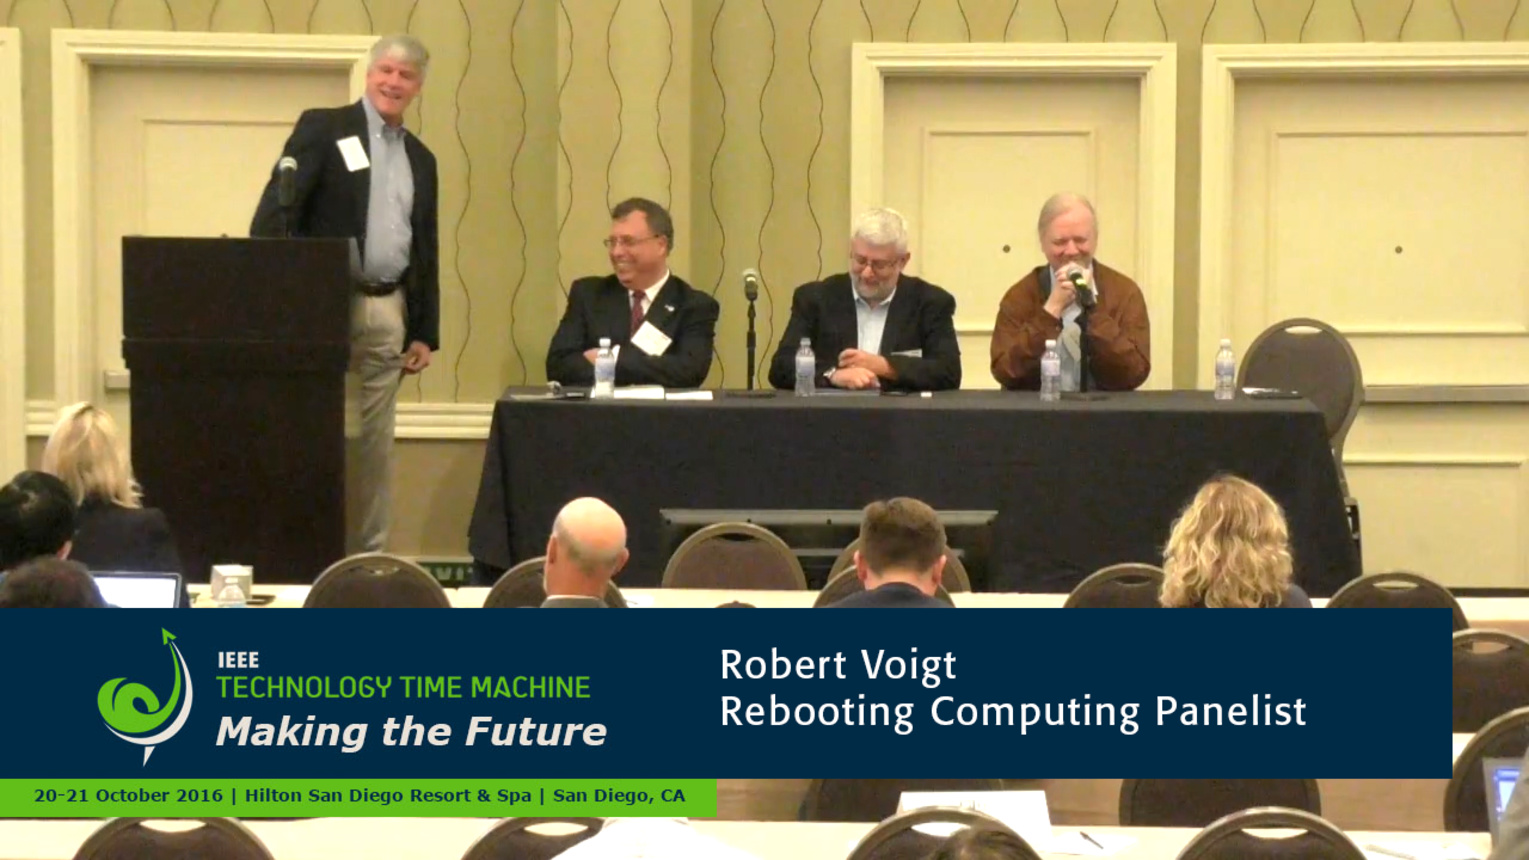 Rebooting Computing Panel - Robert Voigt: 2016 Technology Time Machine